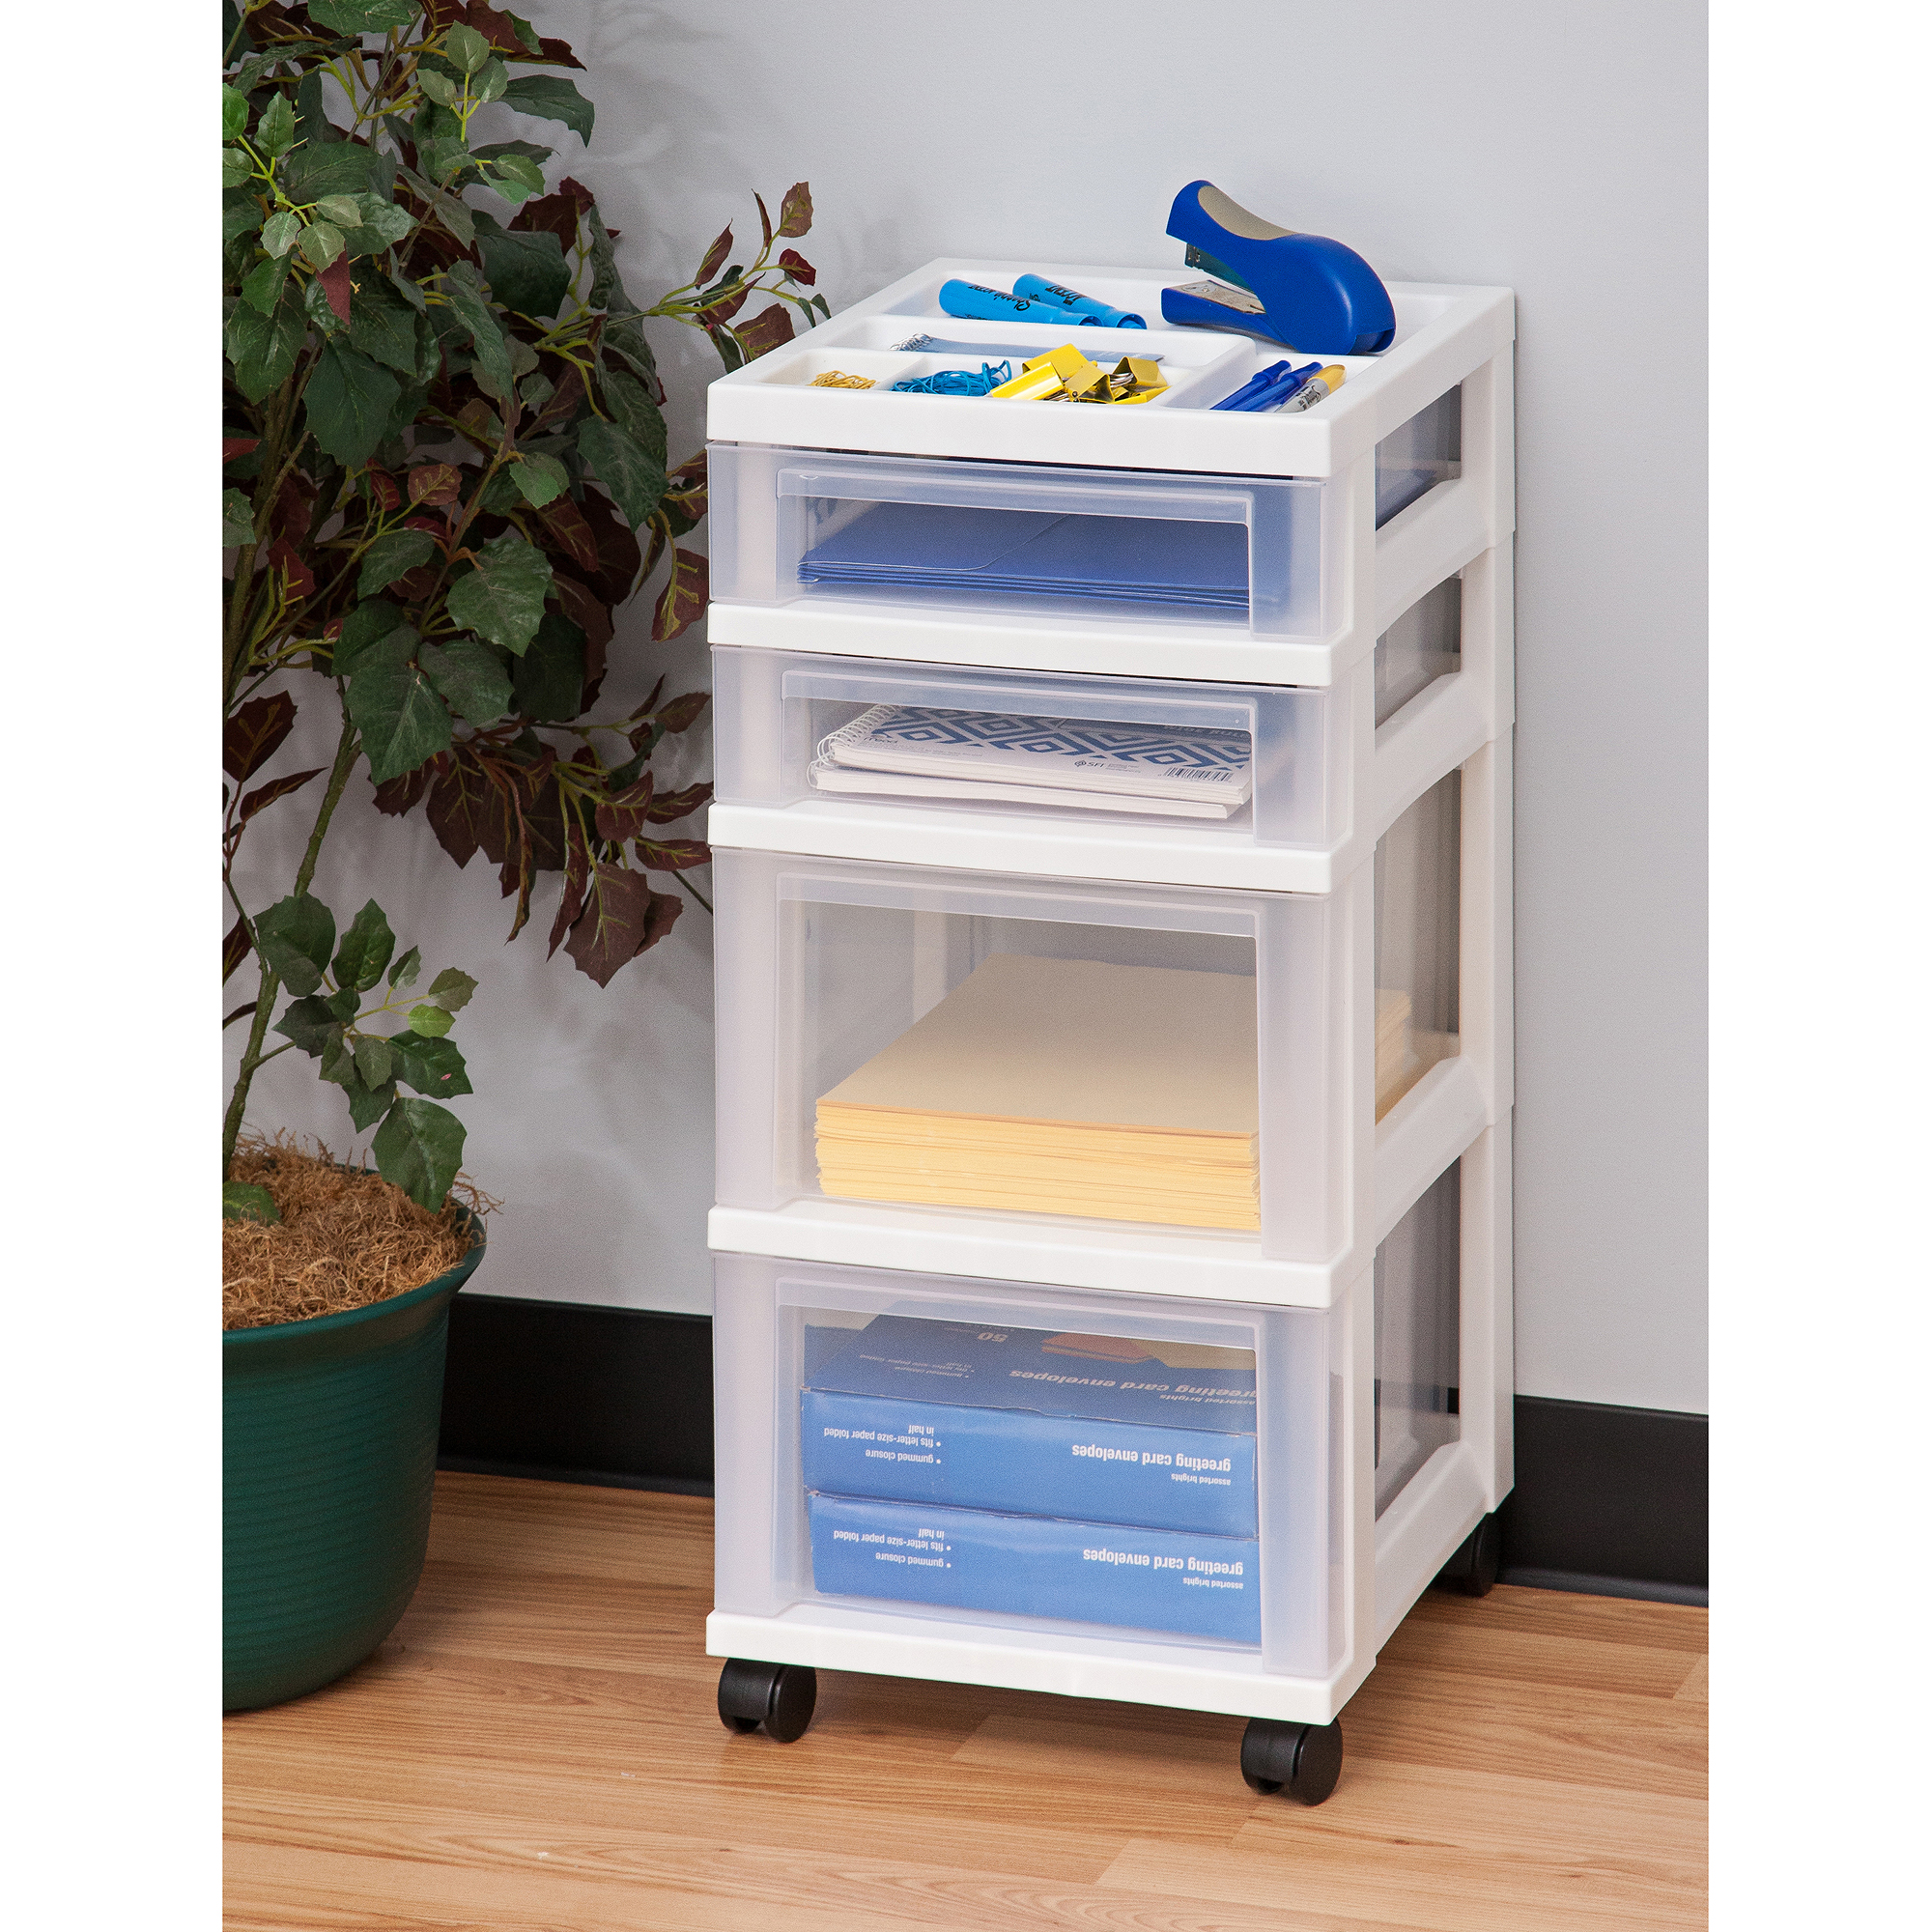 wooden your decor with residence cart drawers for drawer great interior design rolling inspiration storage